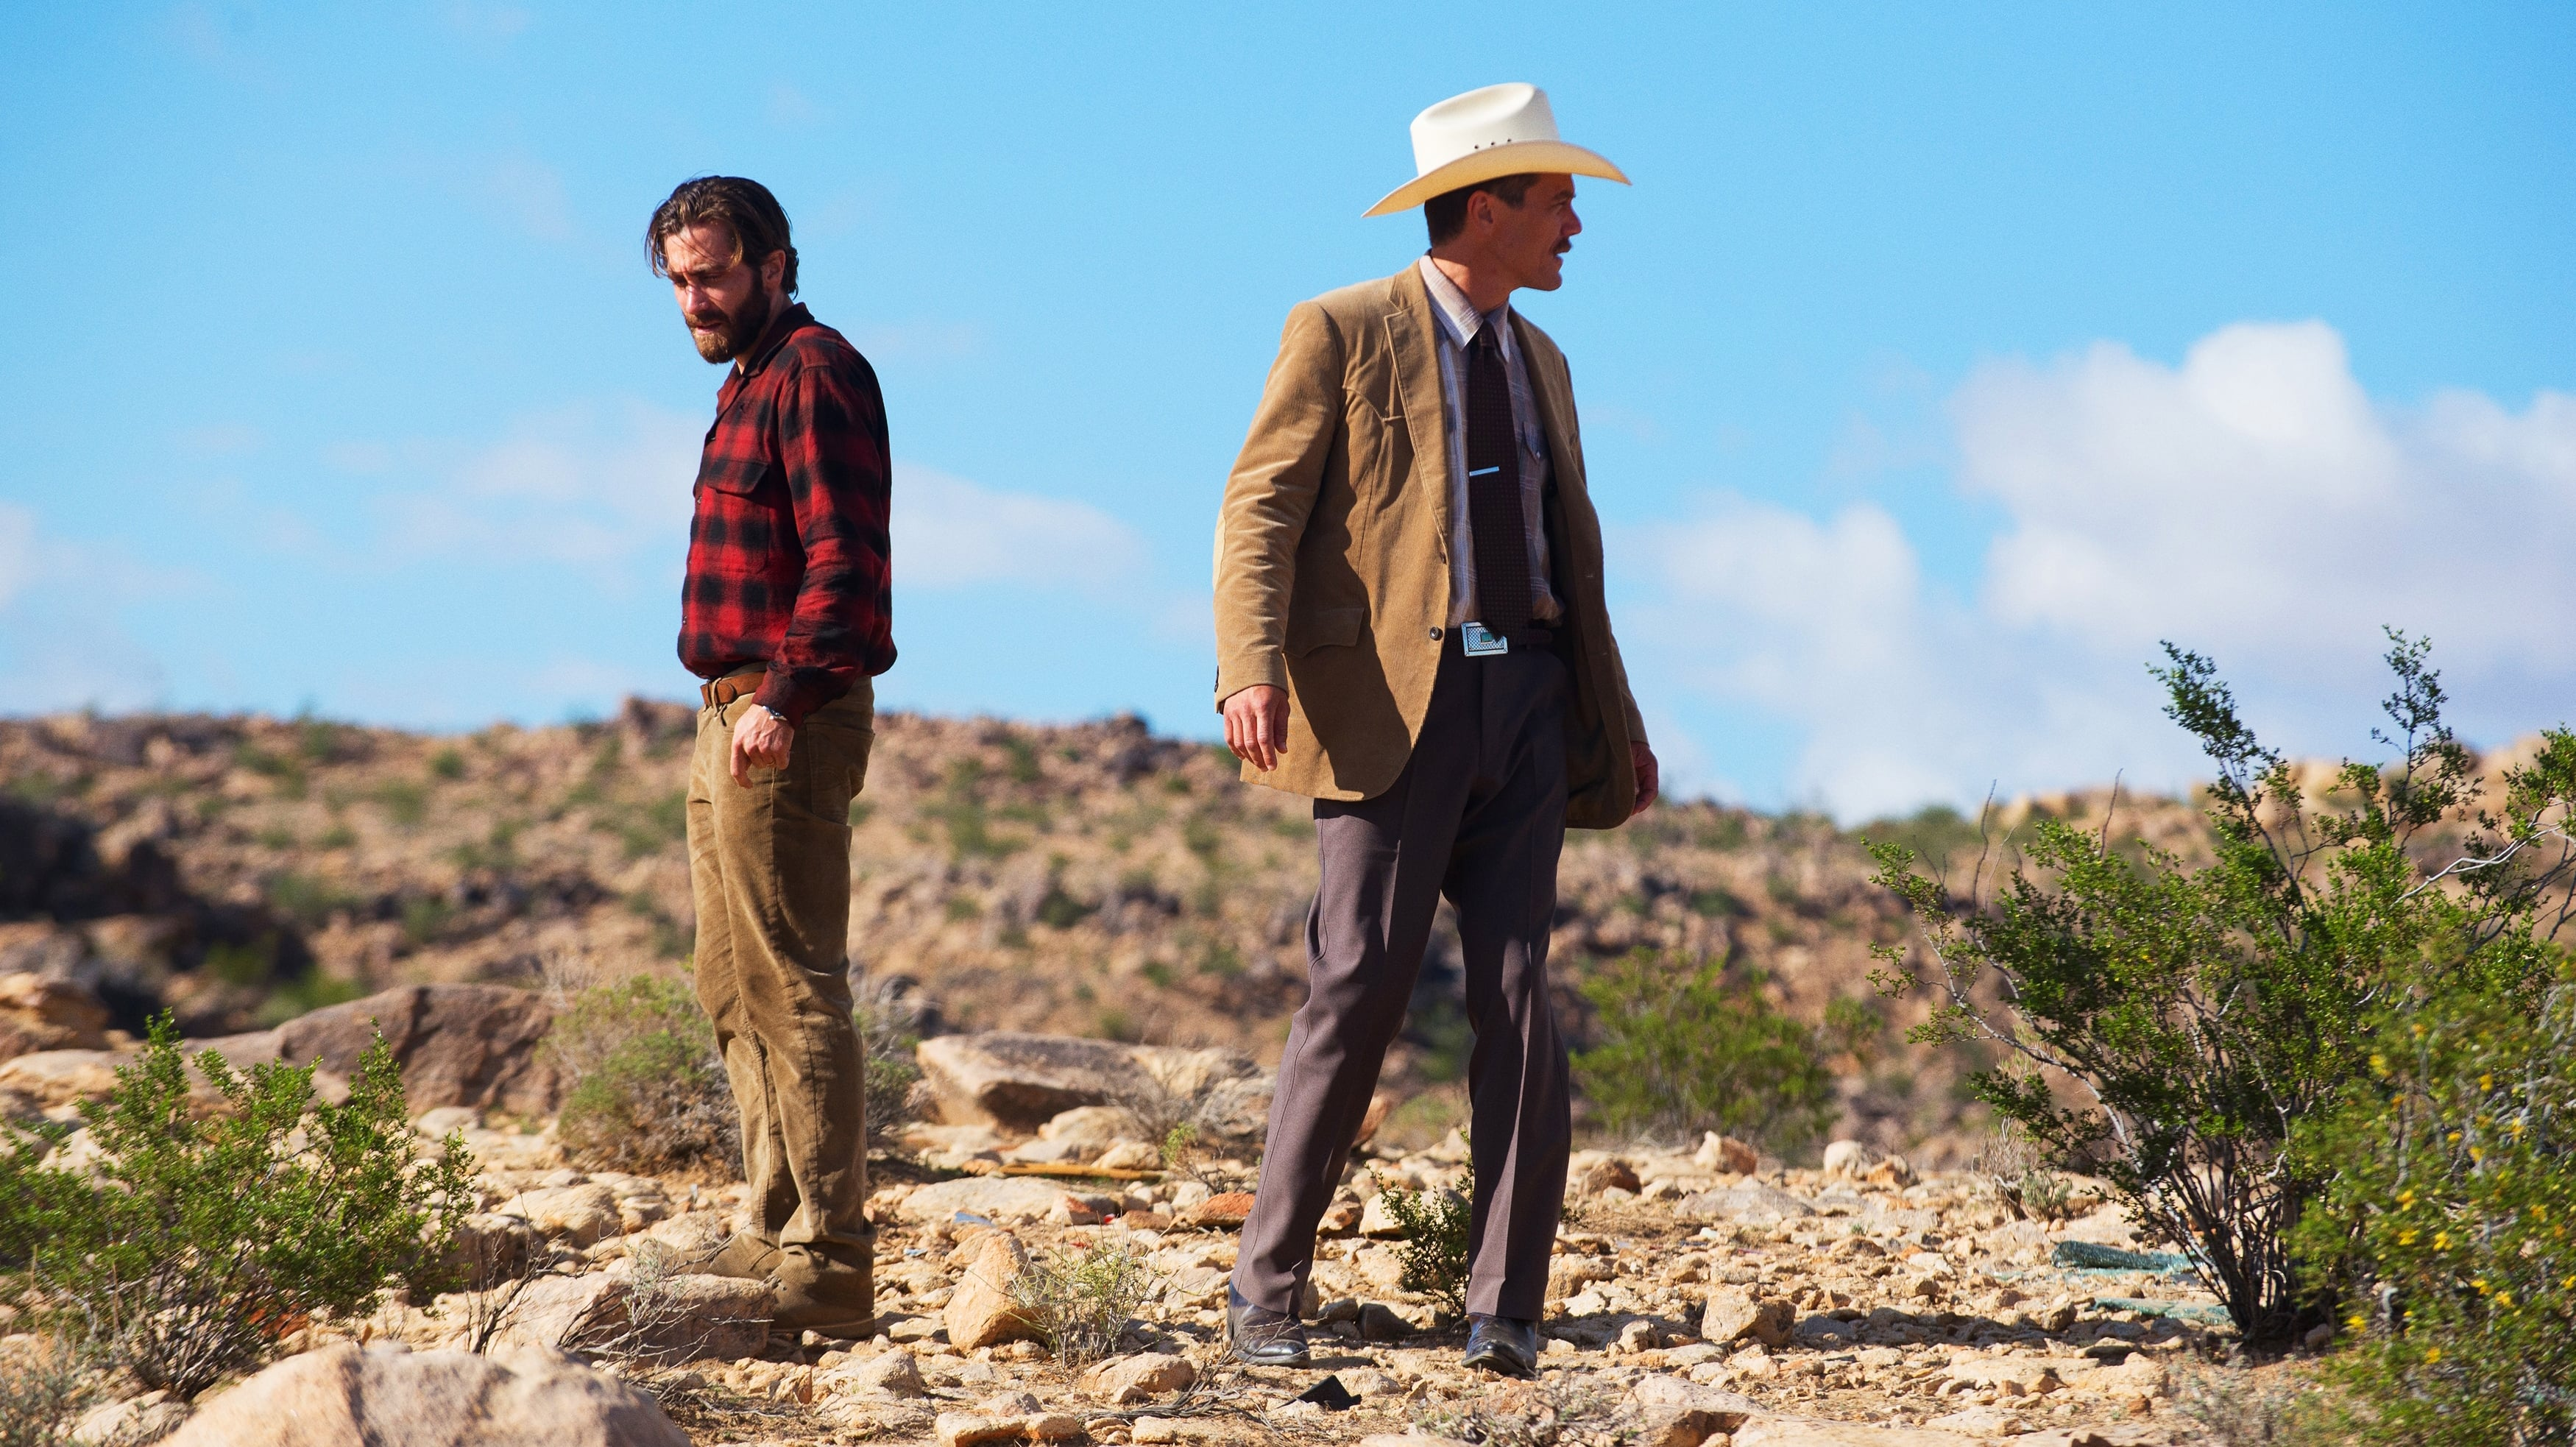 Full Free Watch Nocturnal Animals 2016 Online Full Movies